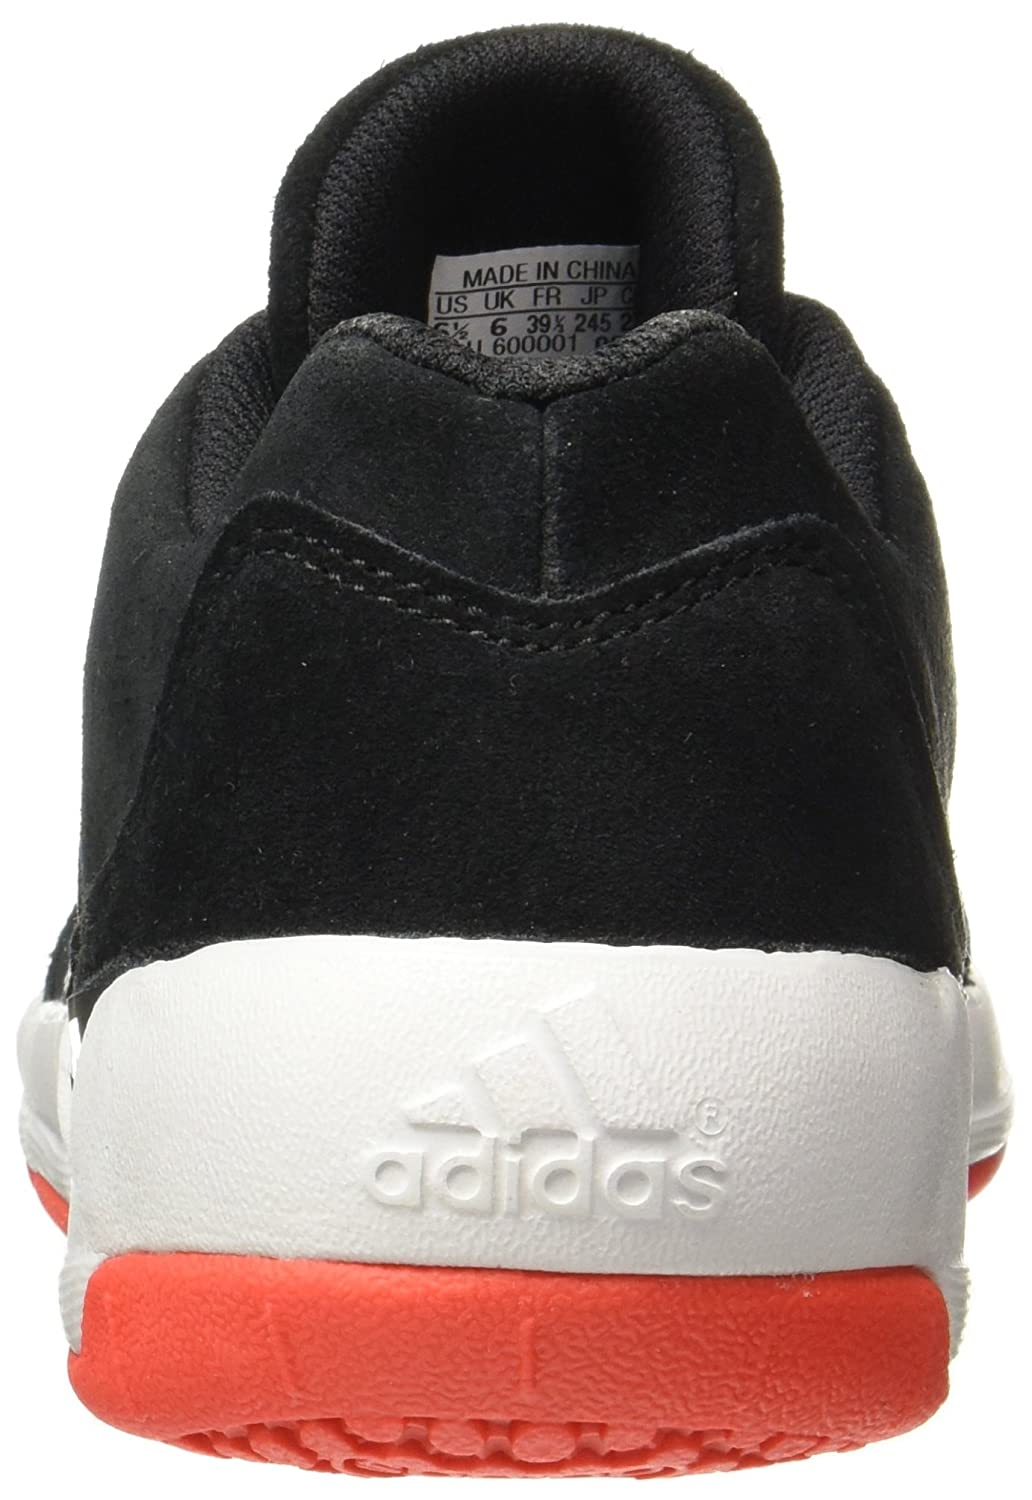 Adidas Men's Daily Double 4 Low Leather Basketball Shoes: Buy Online at Low  Prices in India - Amazon.in